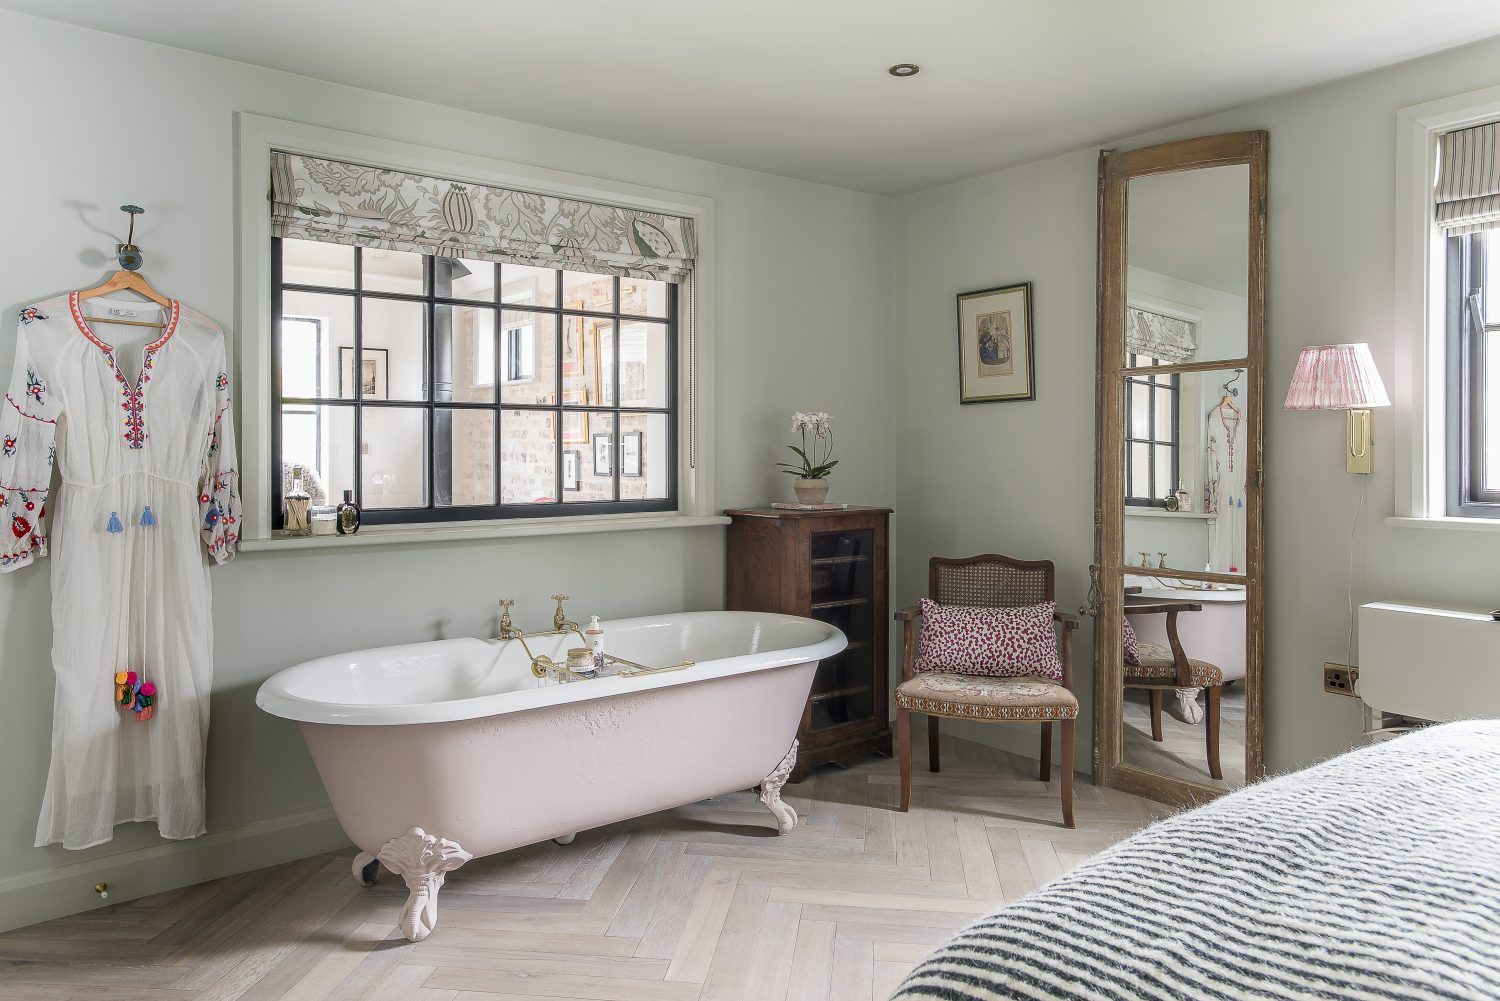 Amy found the bath locally and had it re-enamelled before painting it in Little Greene's Light Peachblossom